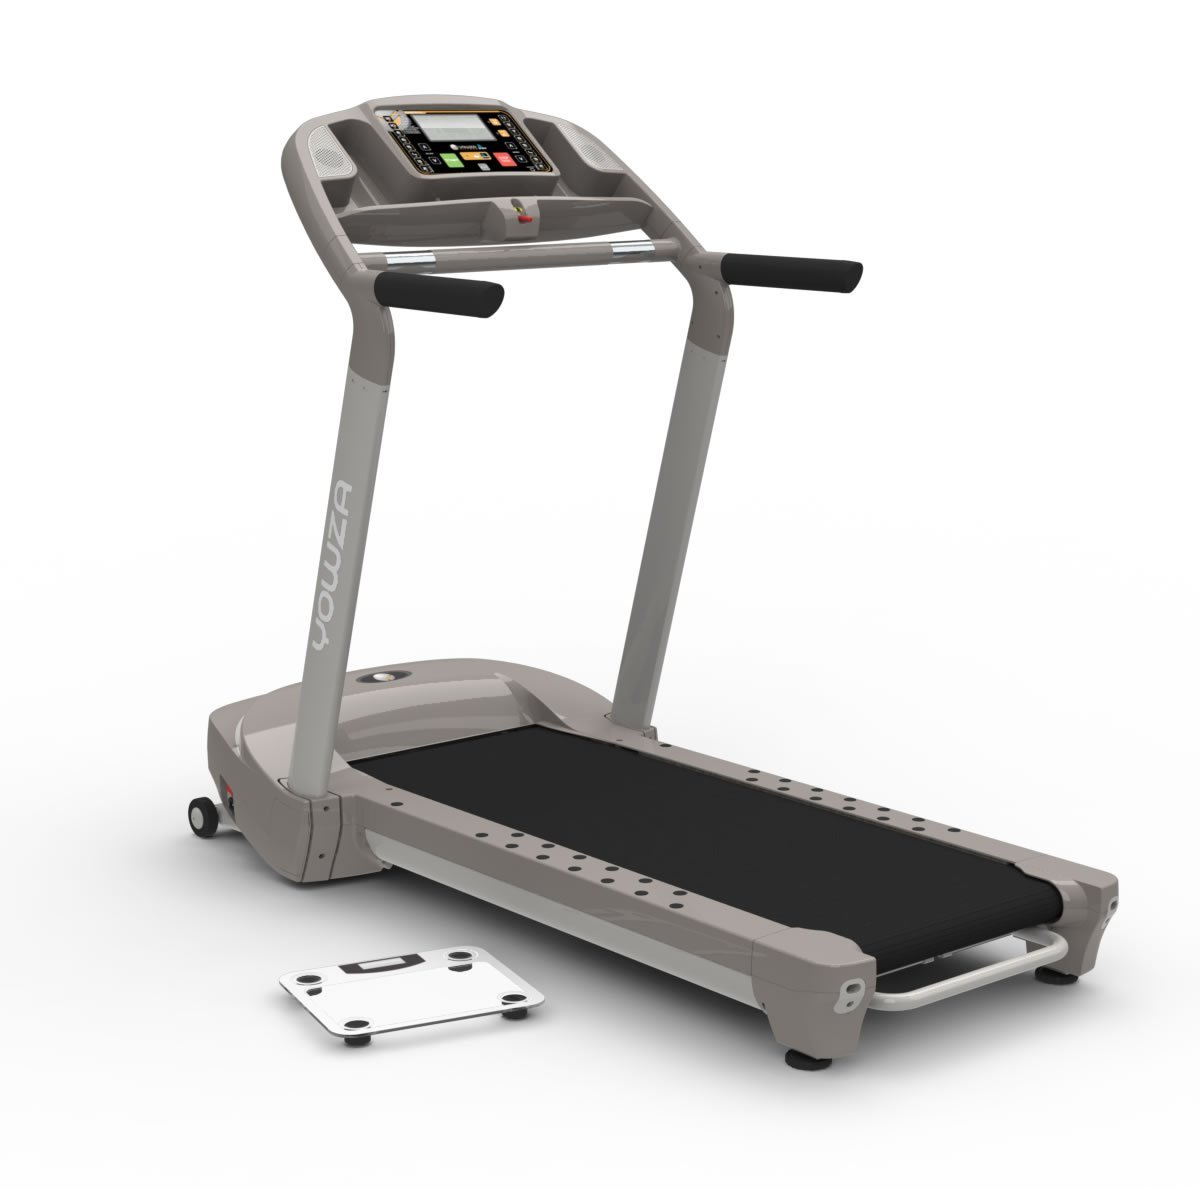 Golds Gym Treadmill Not Working: Bladez T500 Treadmill Review